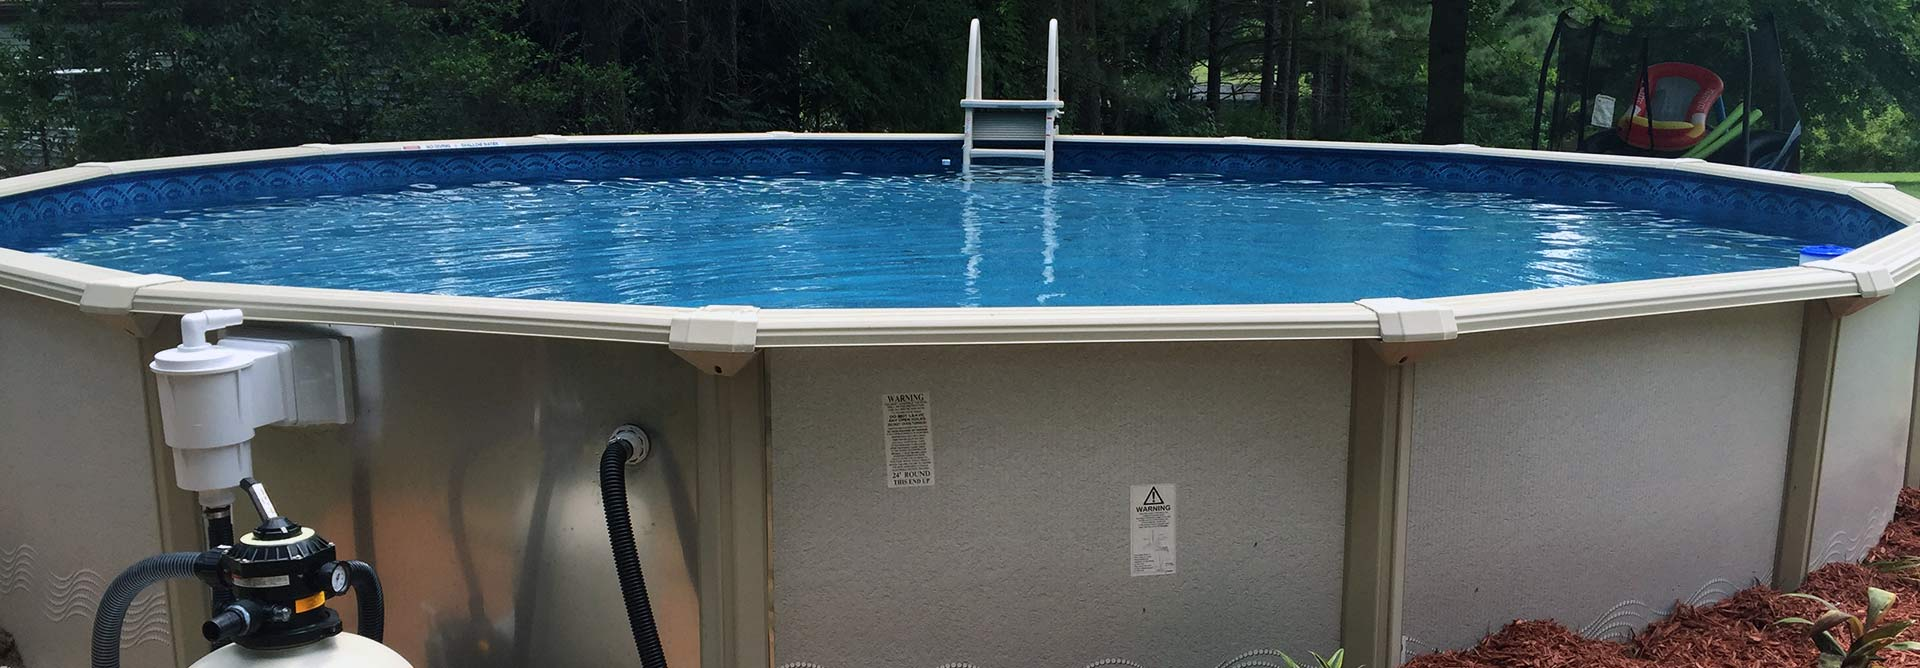 Charlotte Hot Tubs and Swimming Pools | Above Ground Pools ...